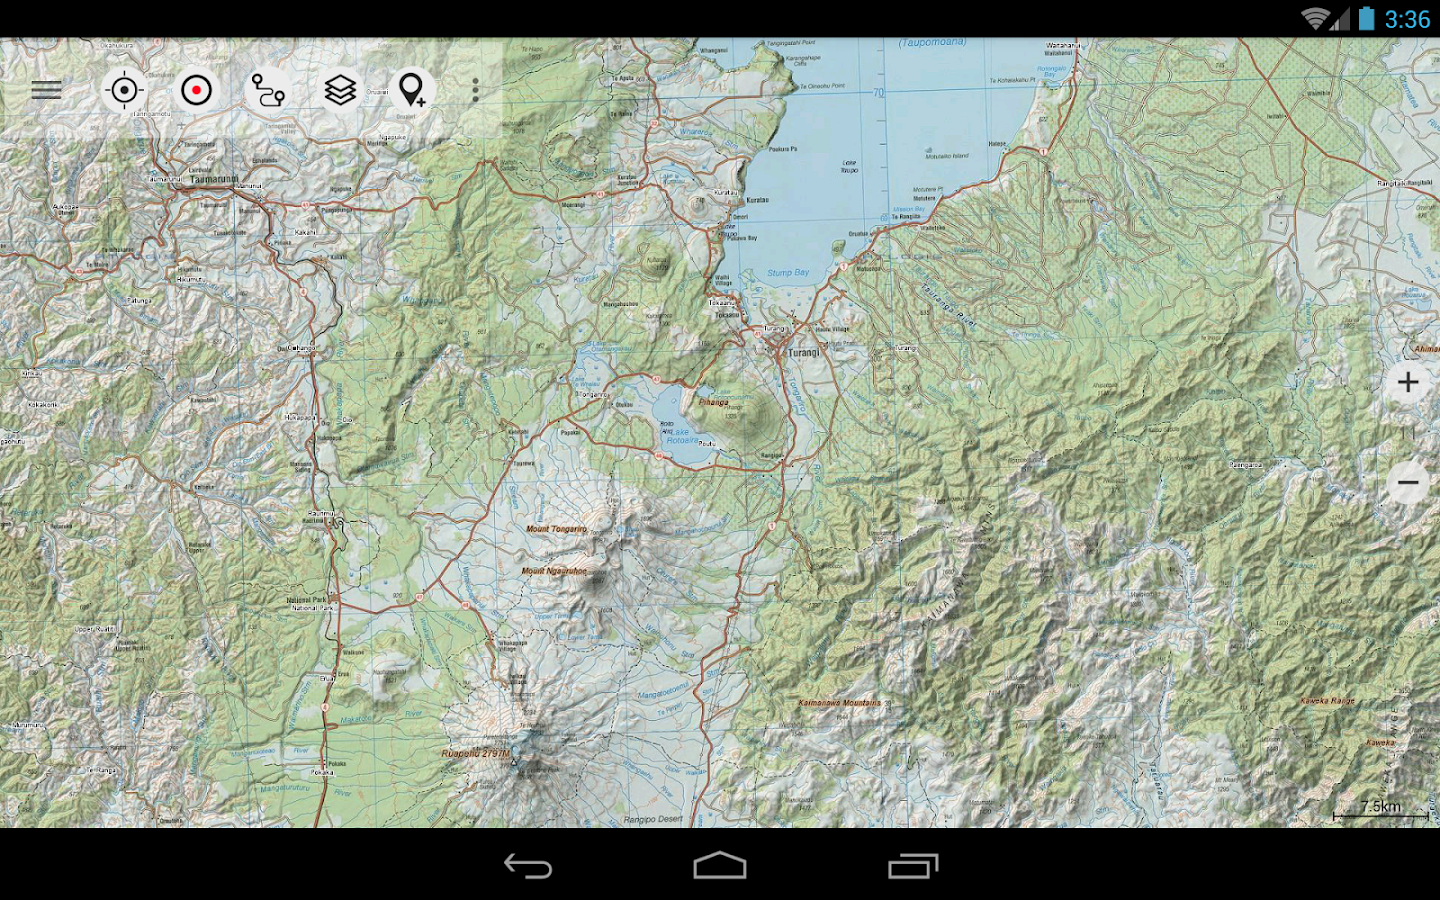 New Zealand Topo Maps Pro Android Apps On Google Play - Migrate us topo free maps to pro versino